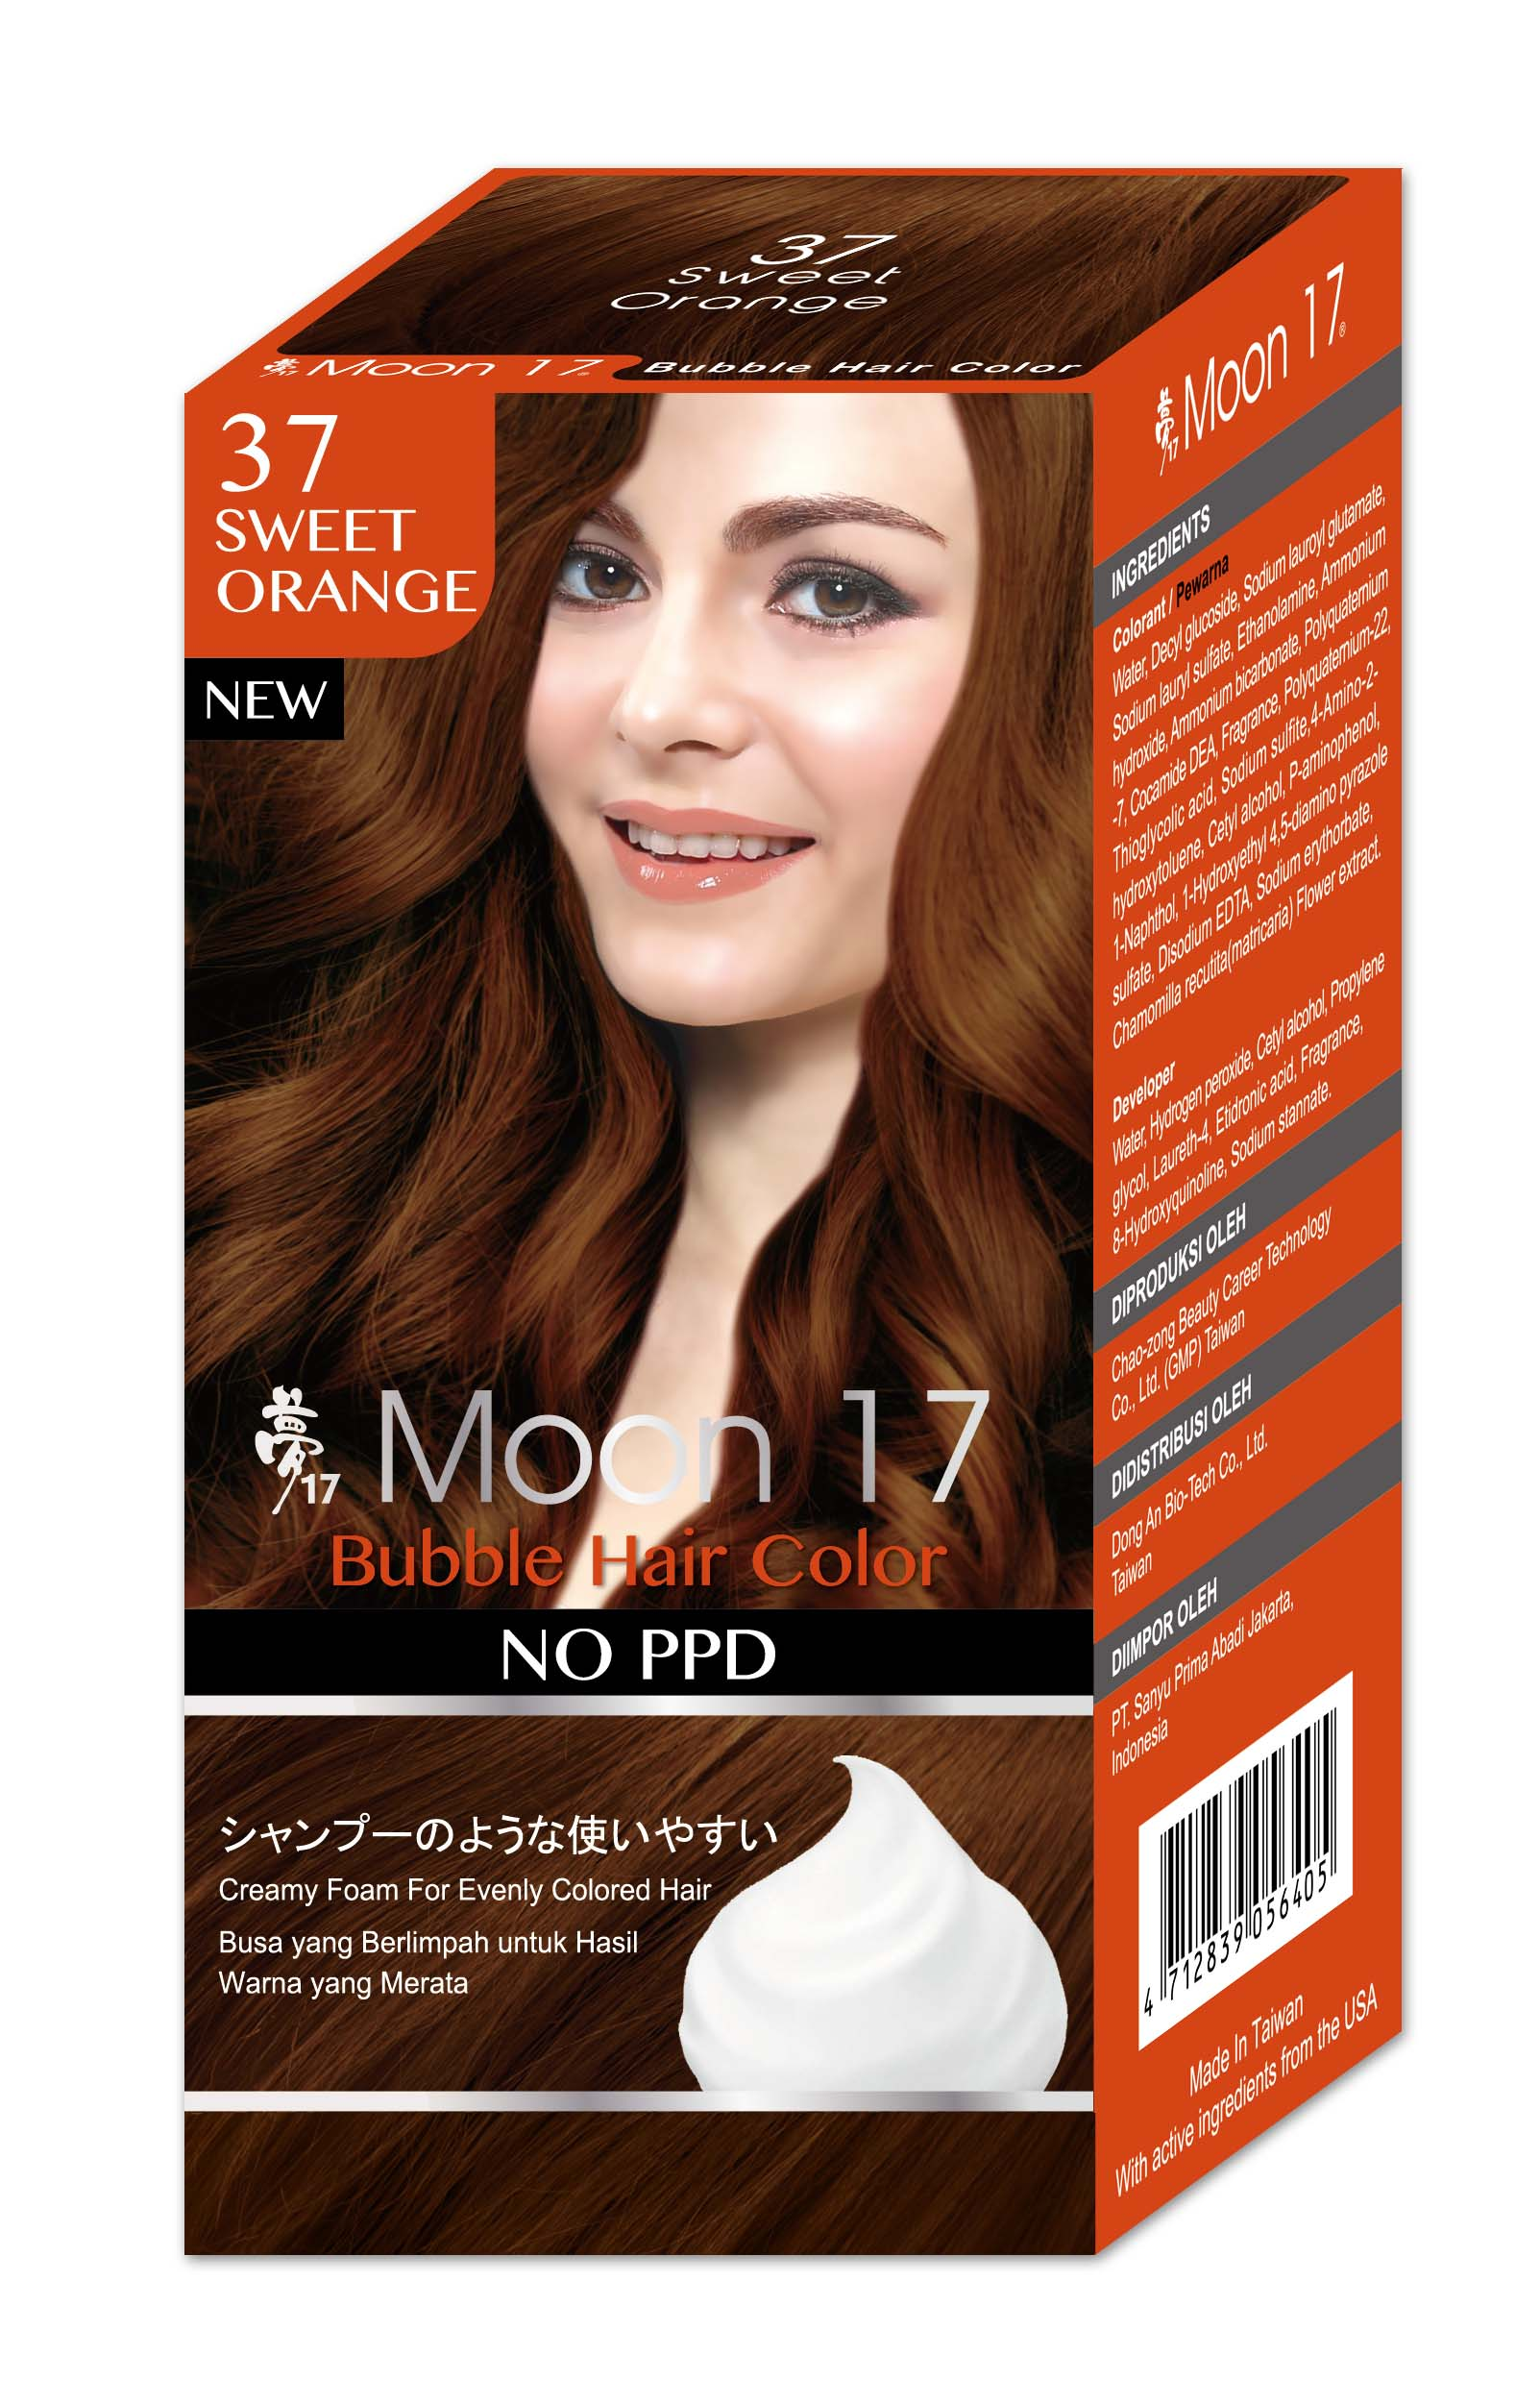 Hair Coloring Moussehair Color Creamsilky Hair Dye Supplier Dong